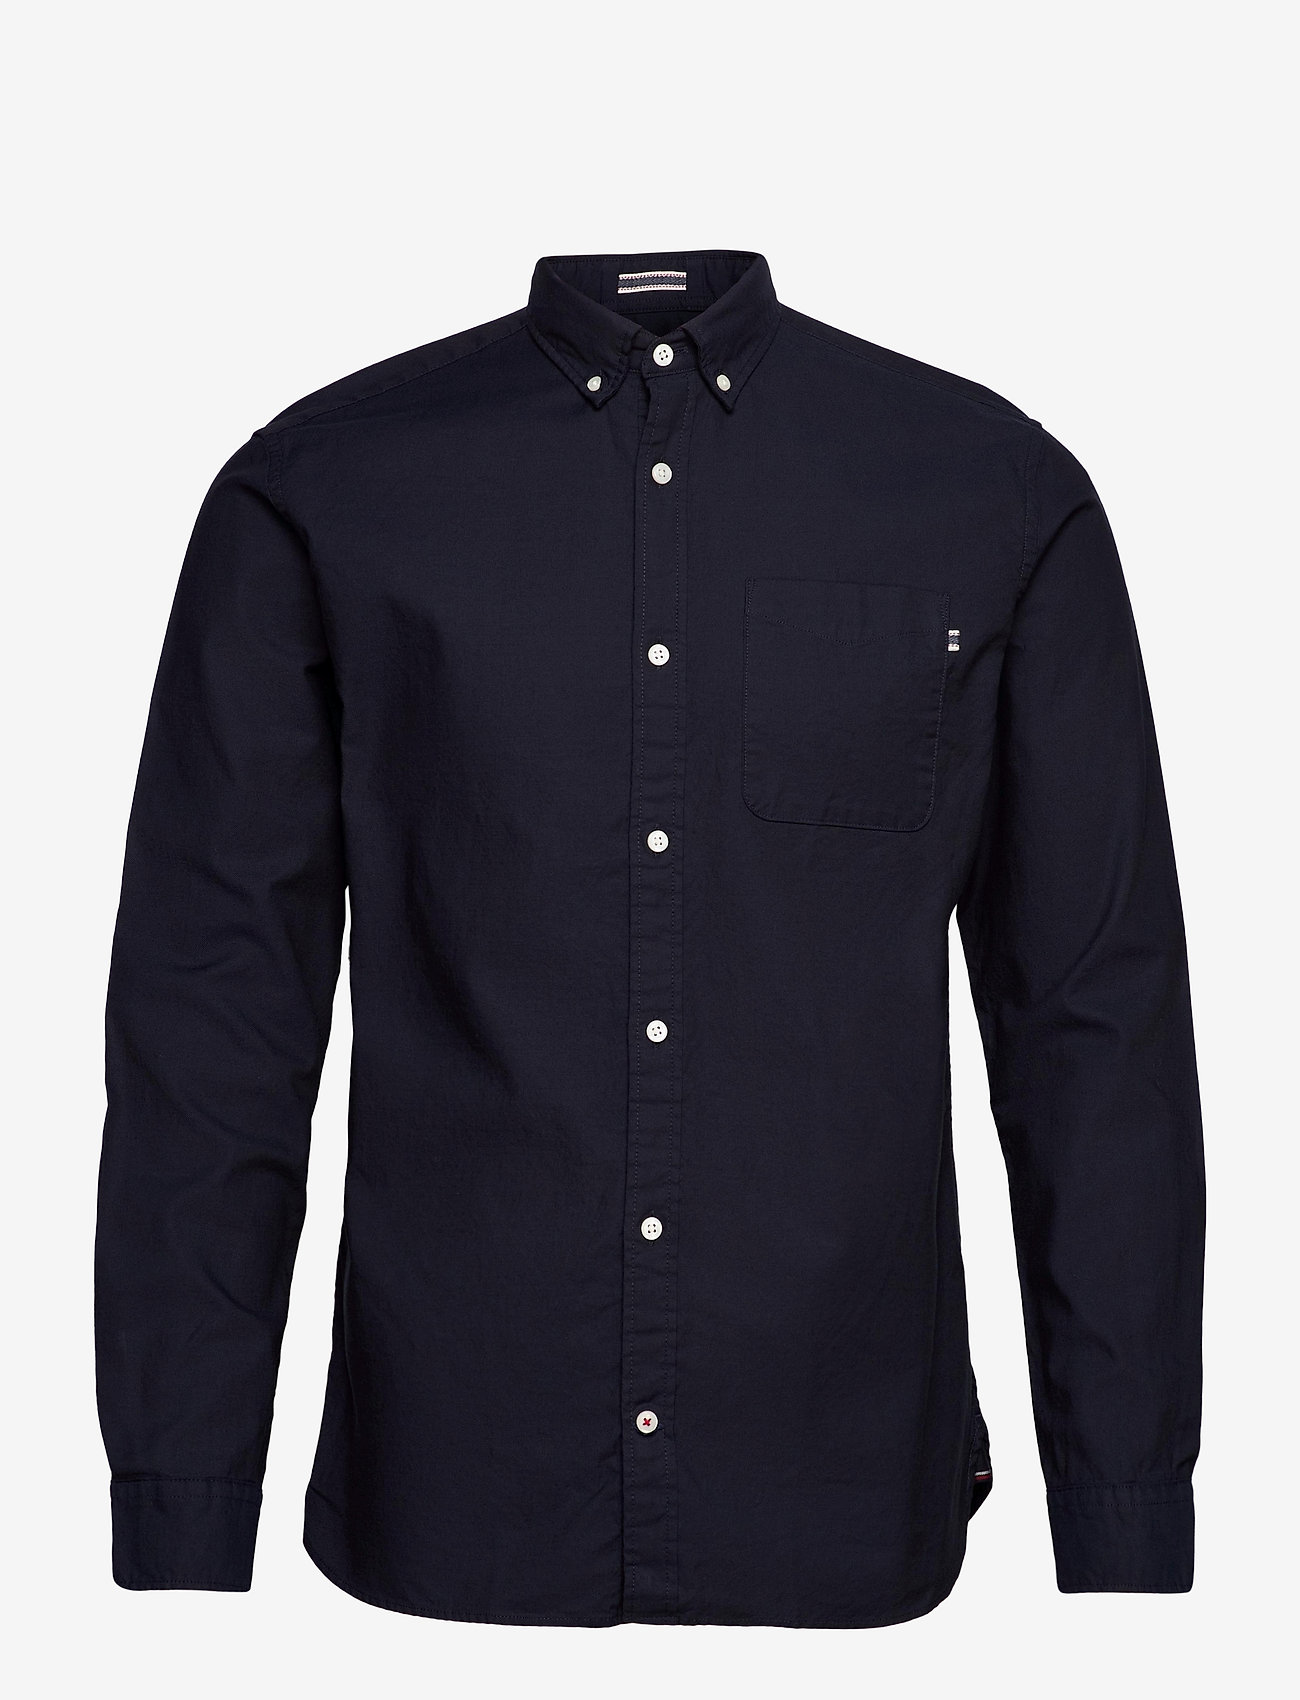 Jack & Jones - JJECLASSIC SOFT OXFORD SHIRT L/S NOOS - basic skjorter - navy blazer - 0